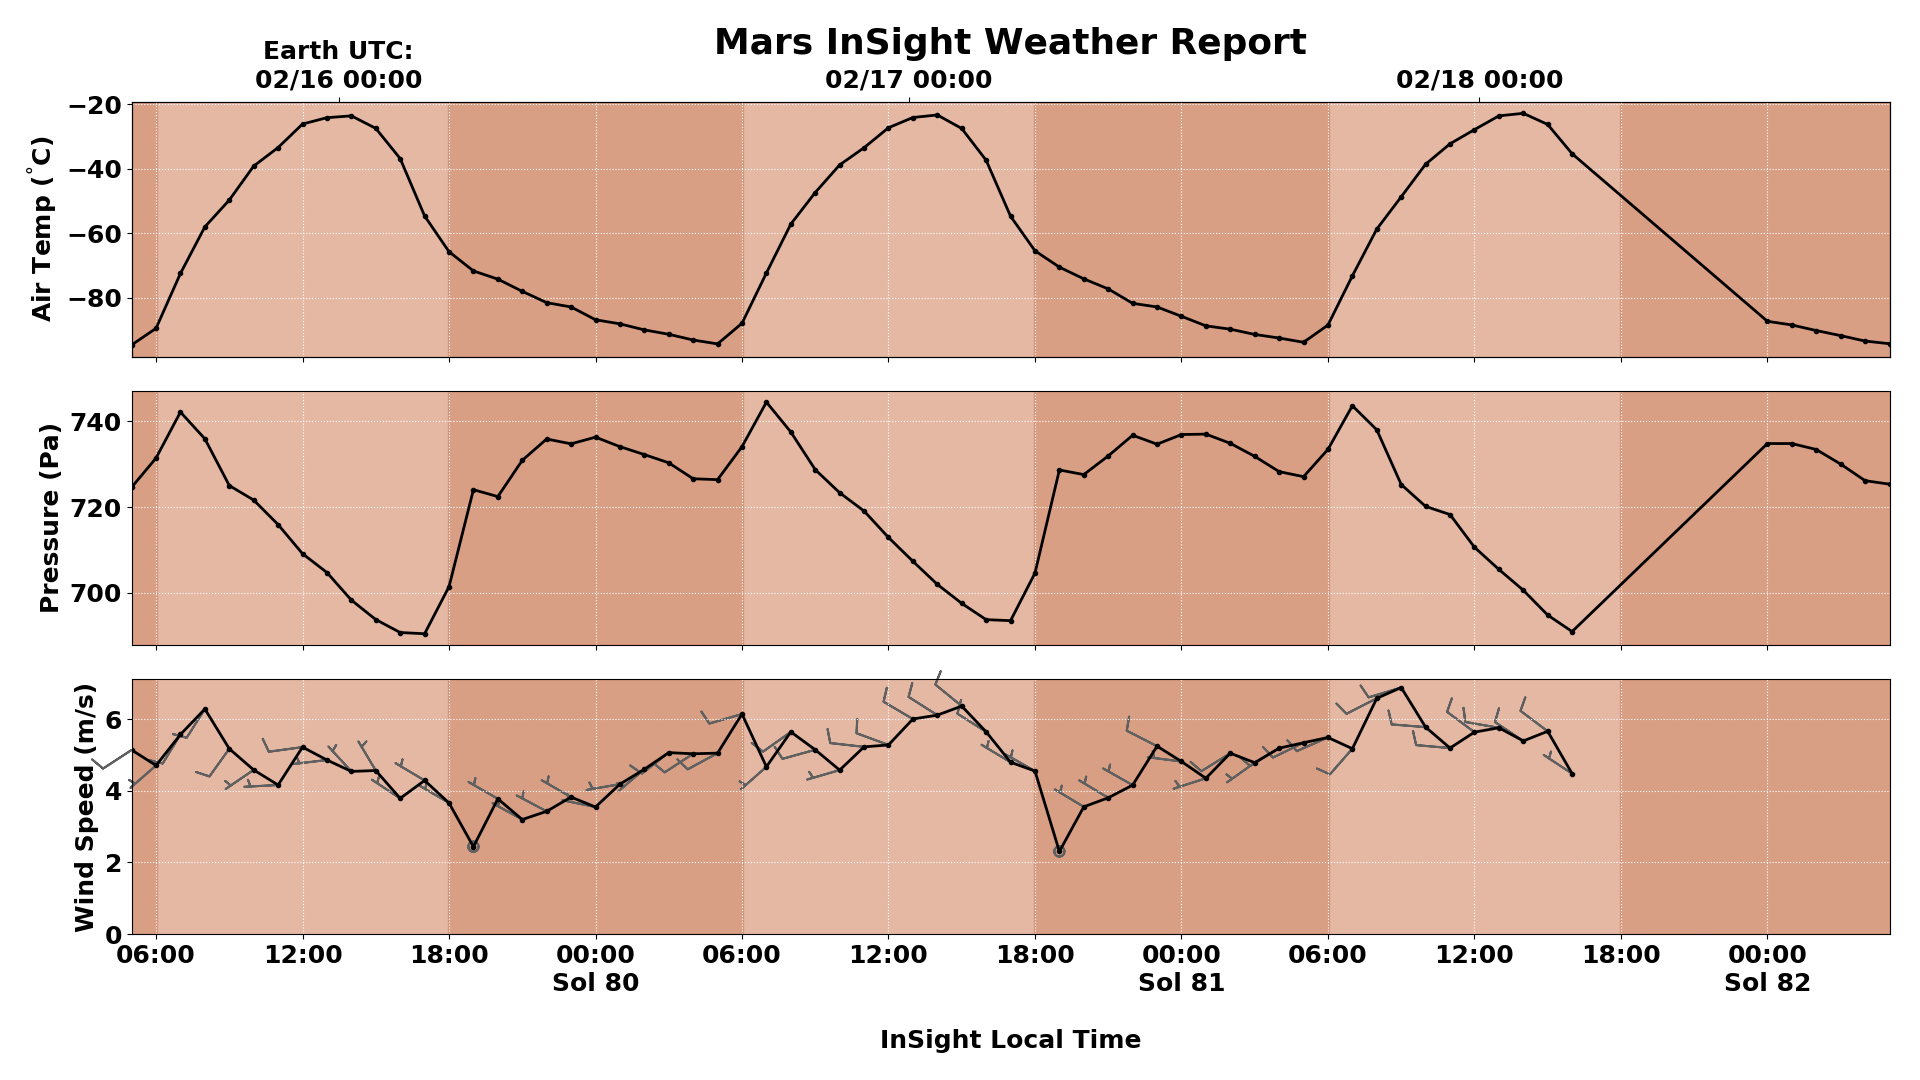 Martian hourly weather data for Saturday, Sunday, and Monday. Note the kinks in the air pressure curve at 07:00 and 19:00 daily.